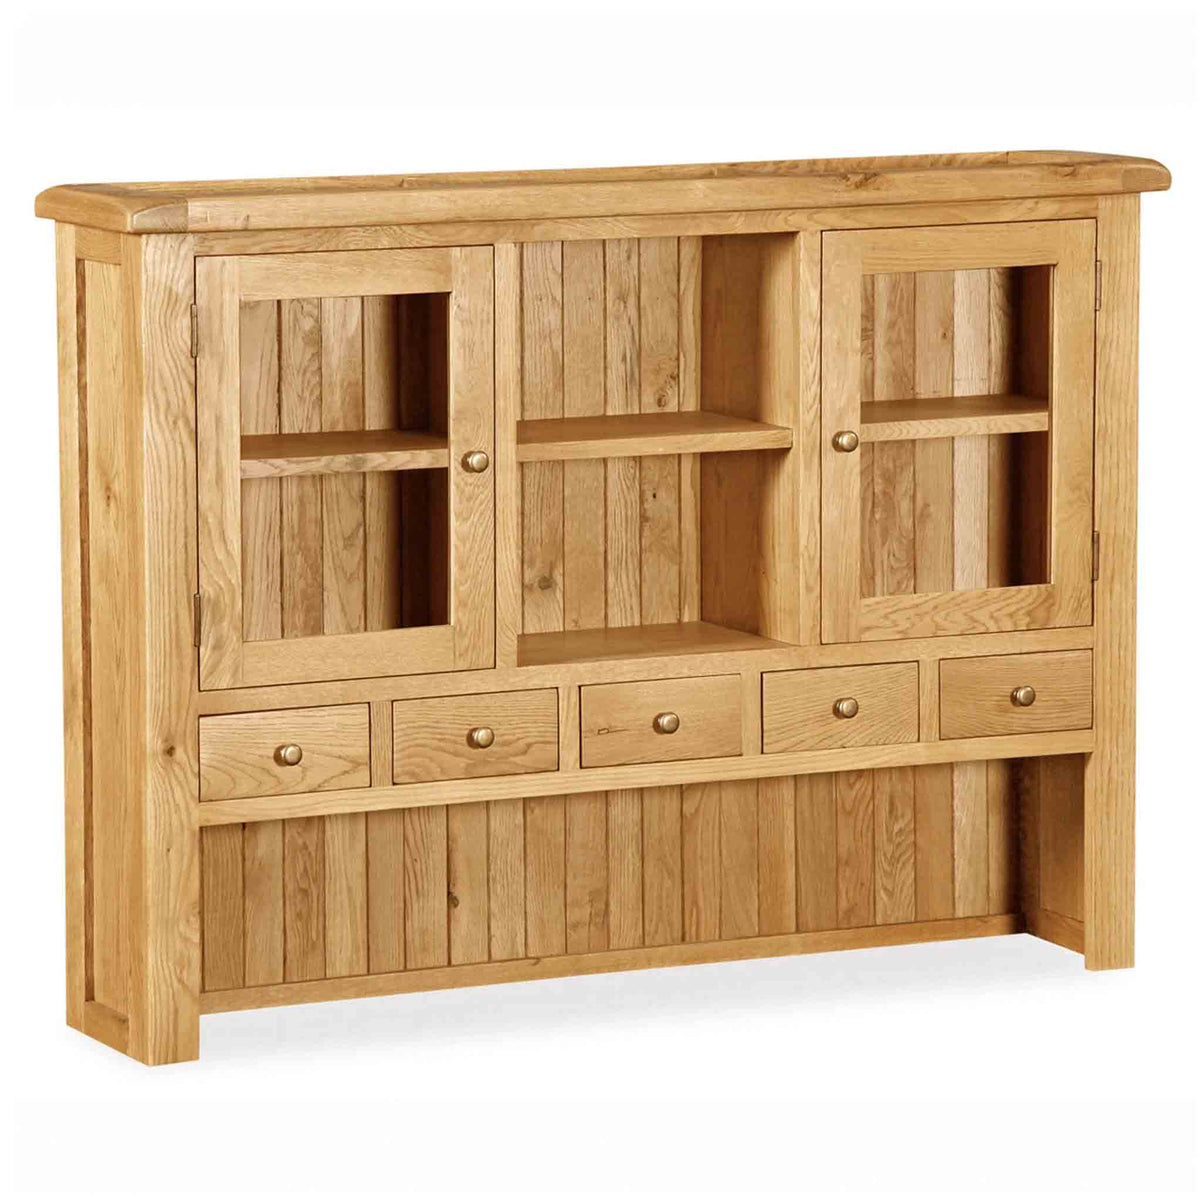 Zelah Large Hutch by Roseland Furnture